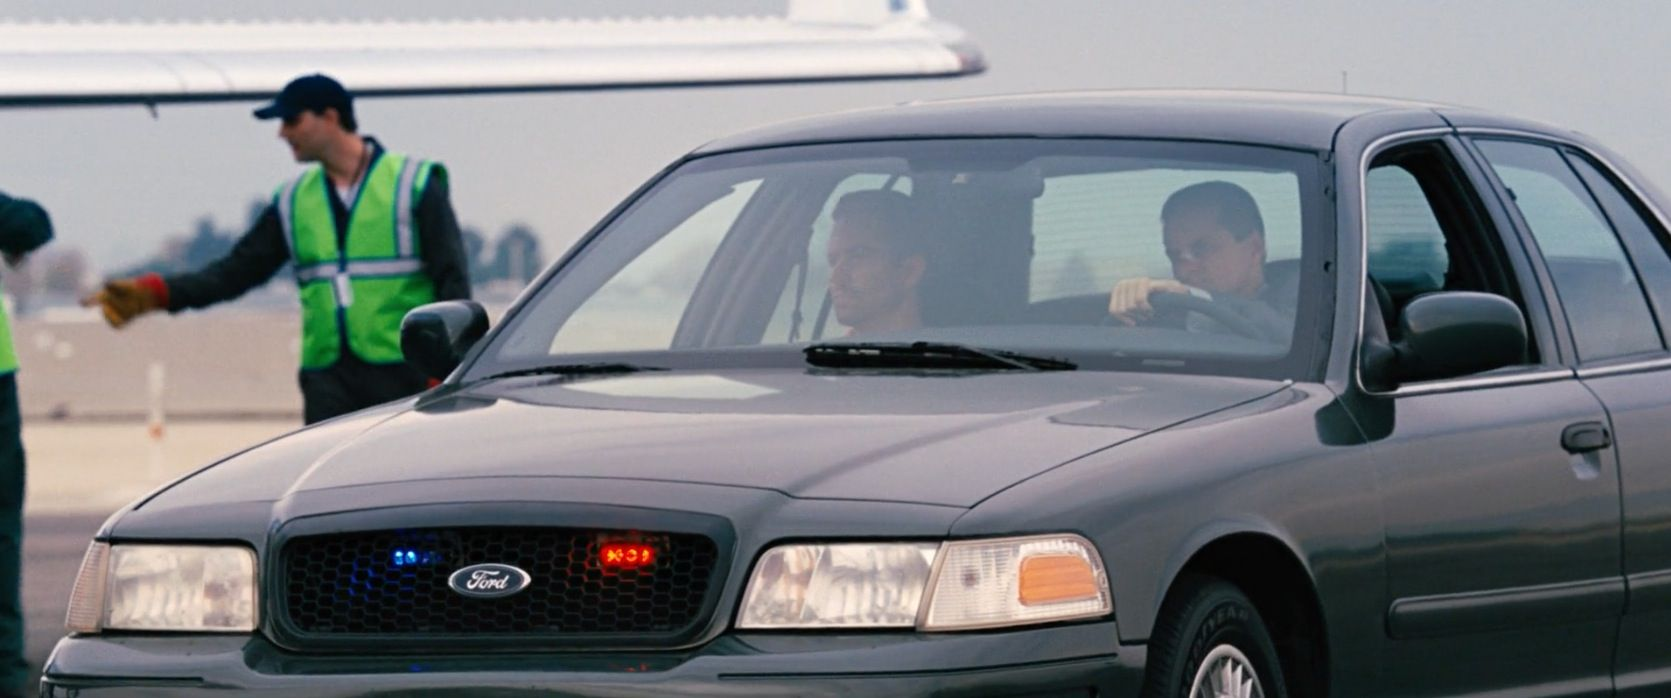 Ford Crown Victoria 1999 car driven by Shea Whigham in FAST